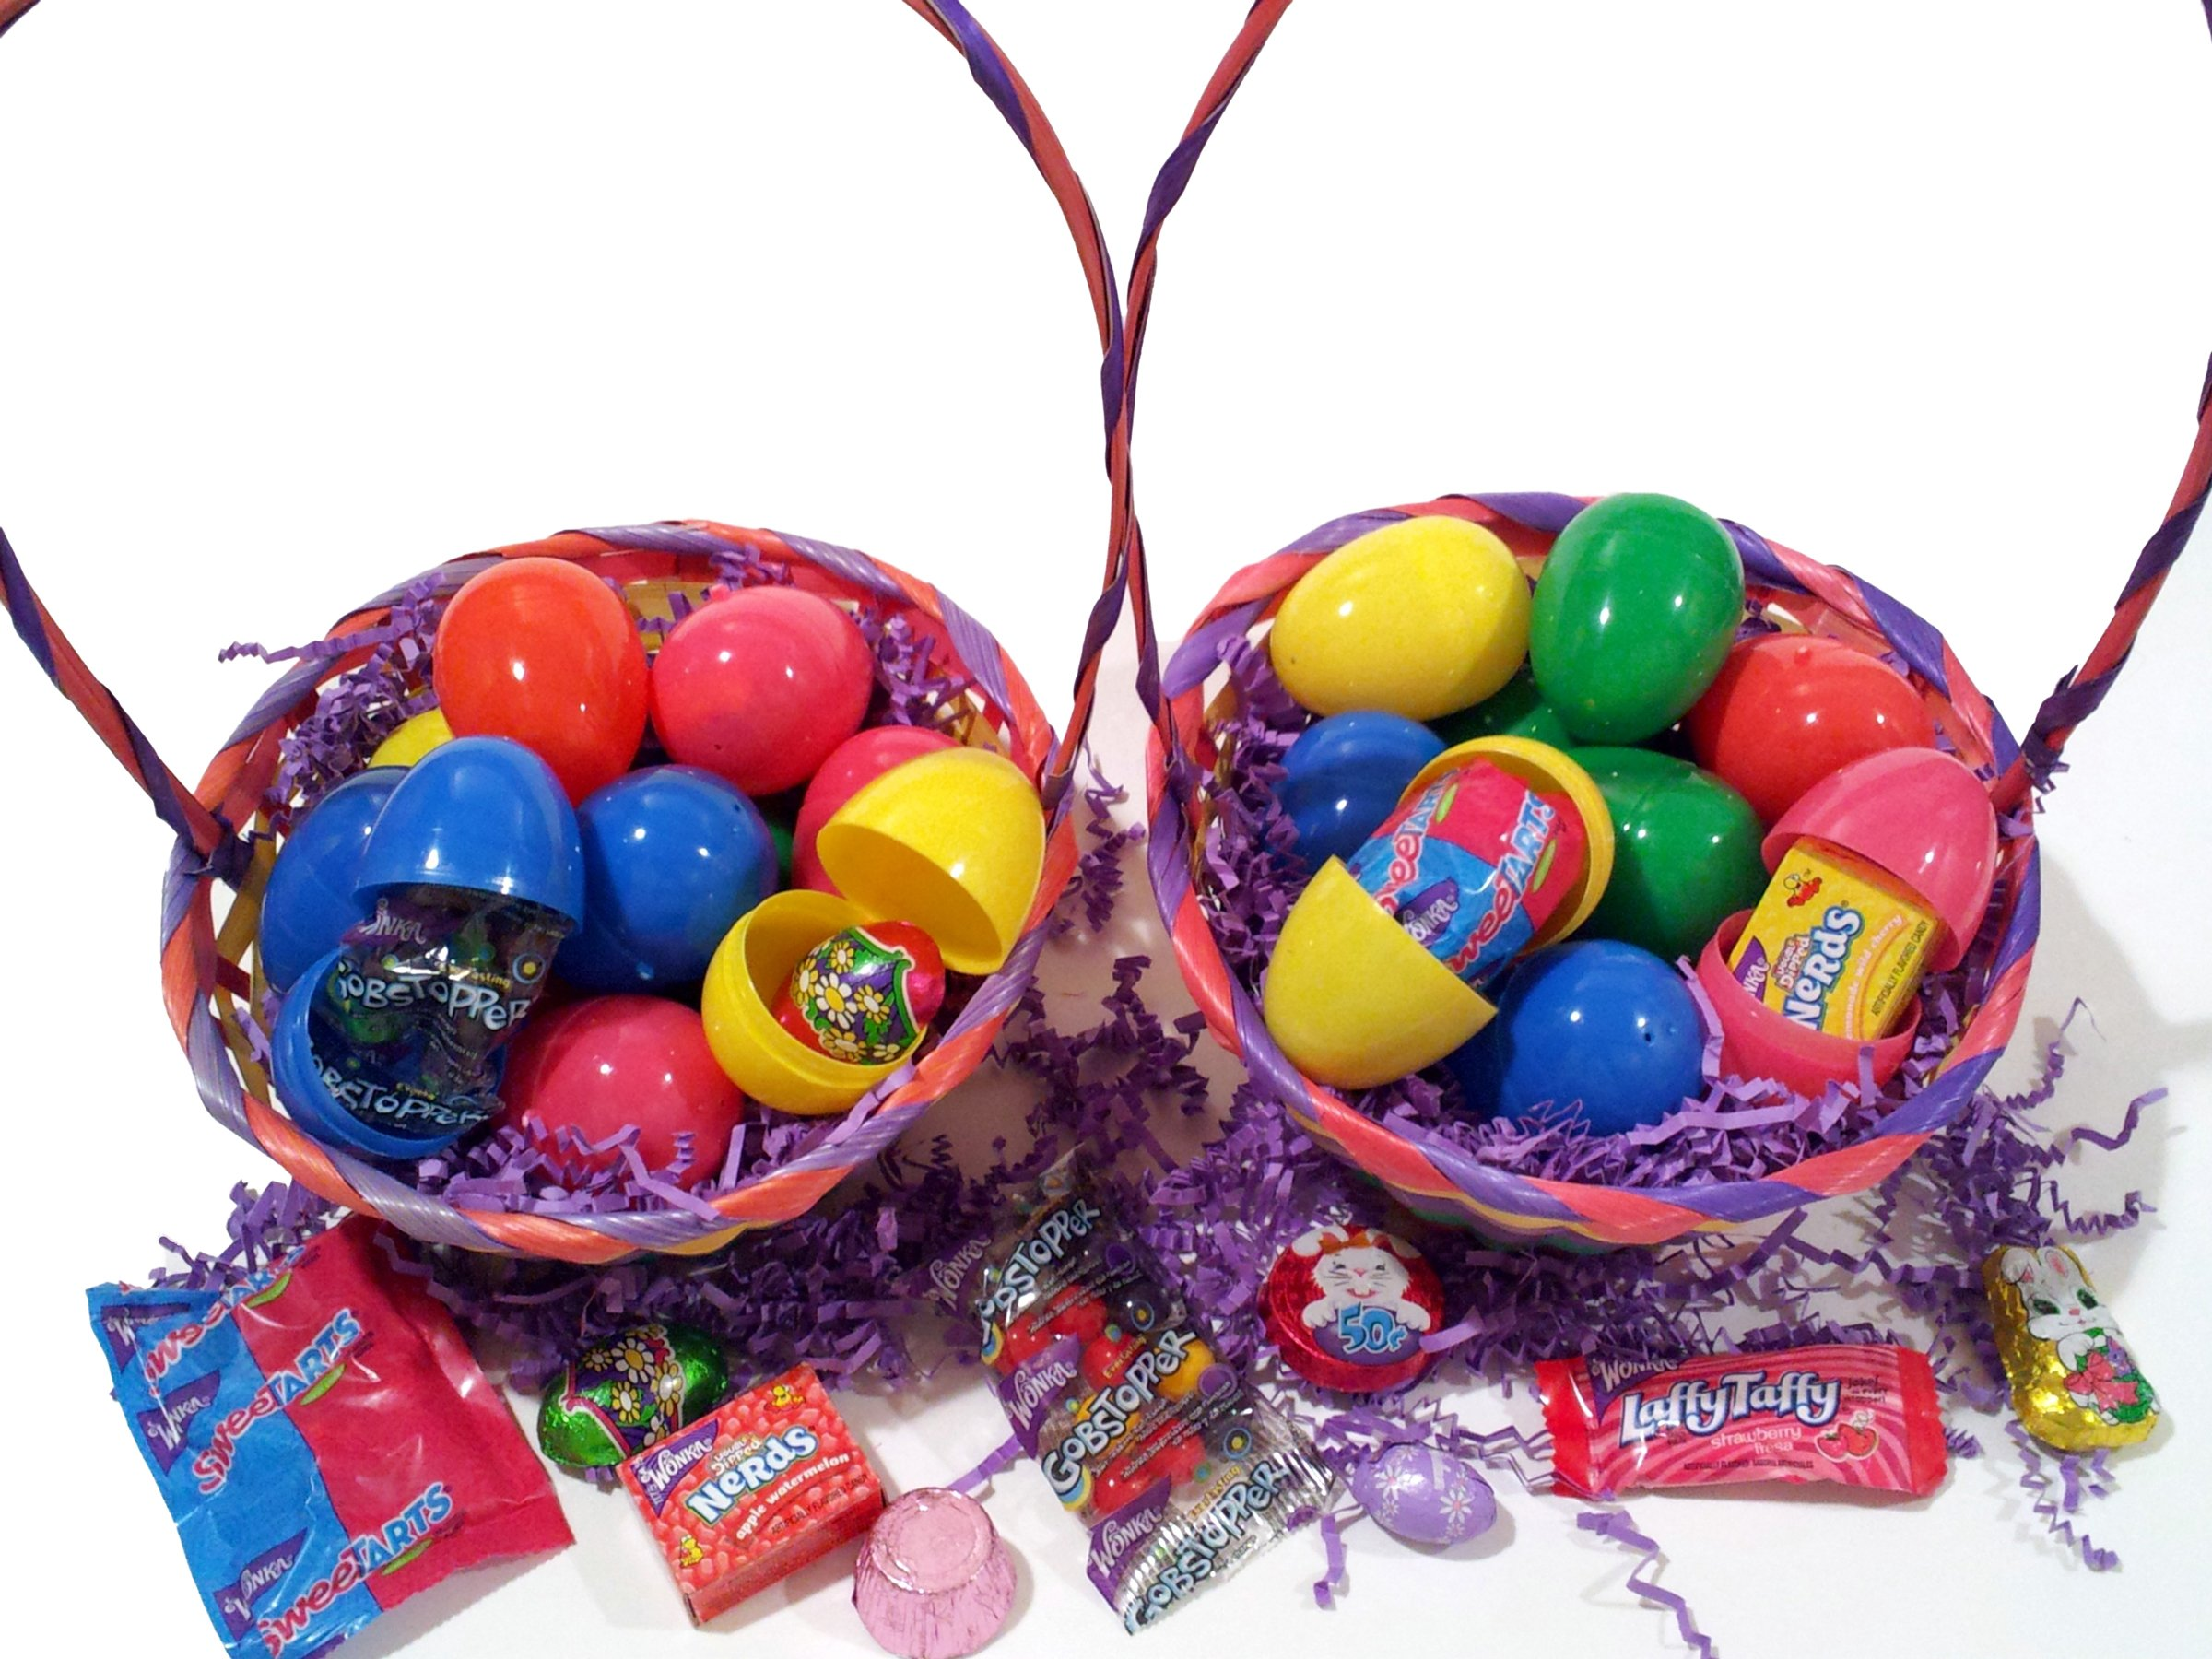 750 Lot Pre-Filled Easter Eggs, Solid, Egg Hunt Mixed Candy Chocolates & Toys